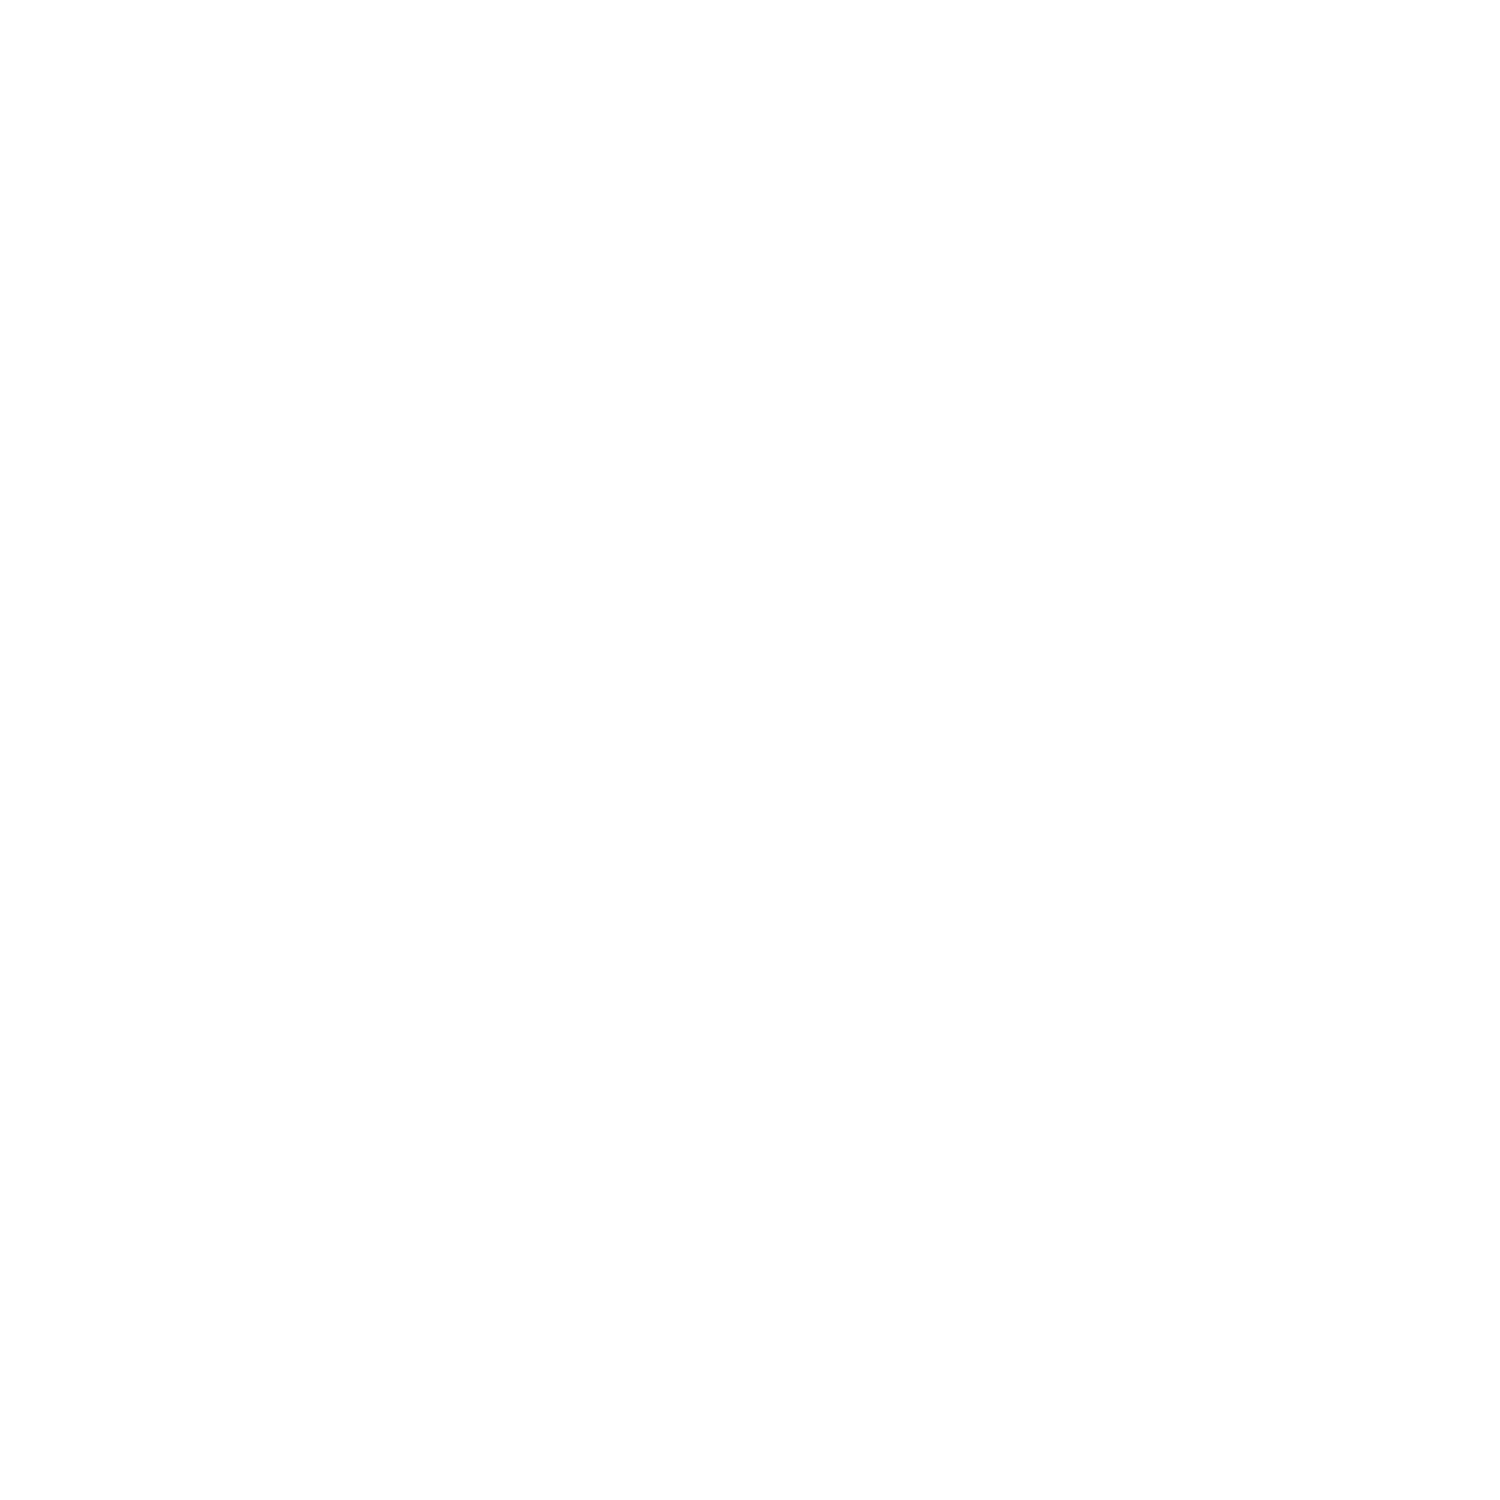 Full Barrel Cooperative Brewery & Taproom